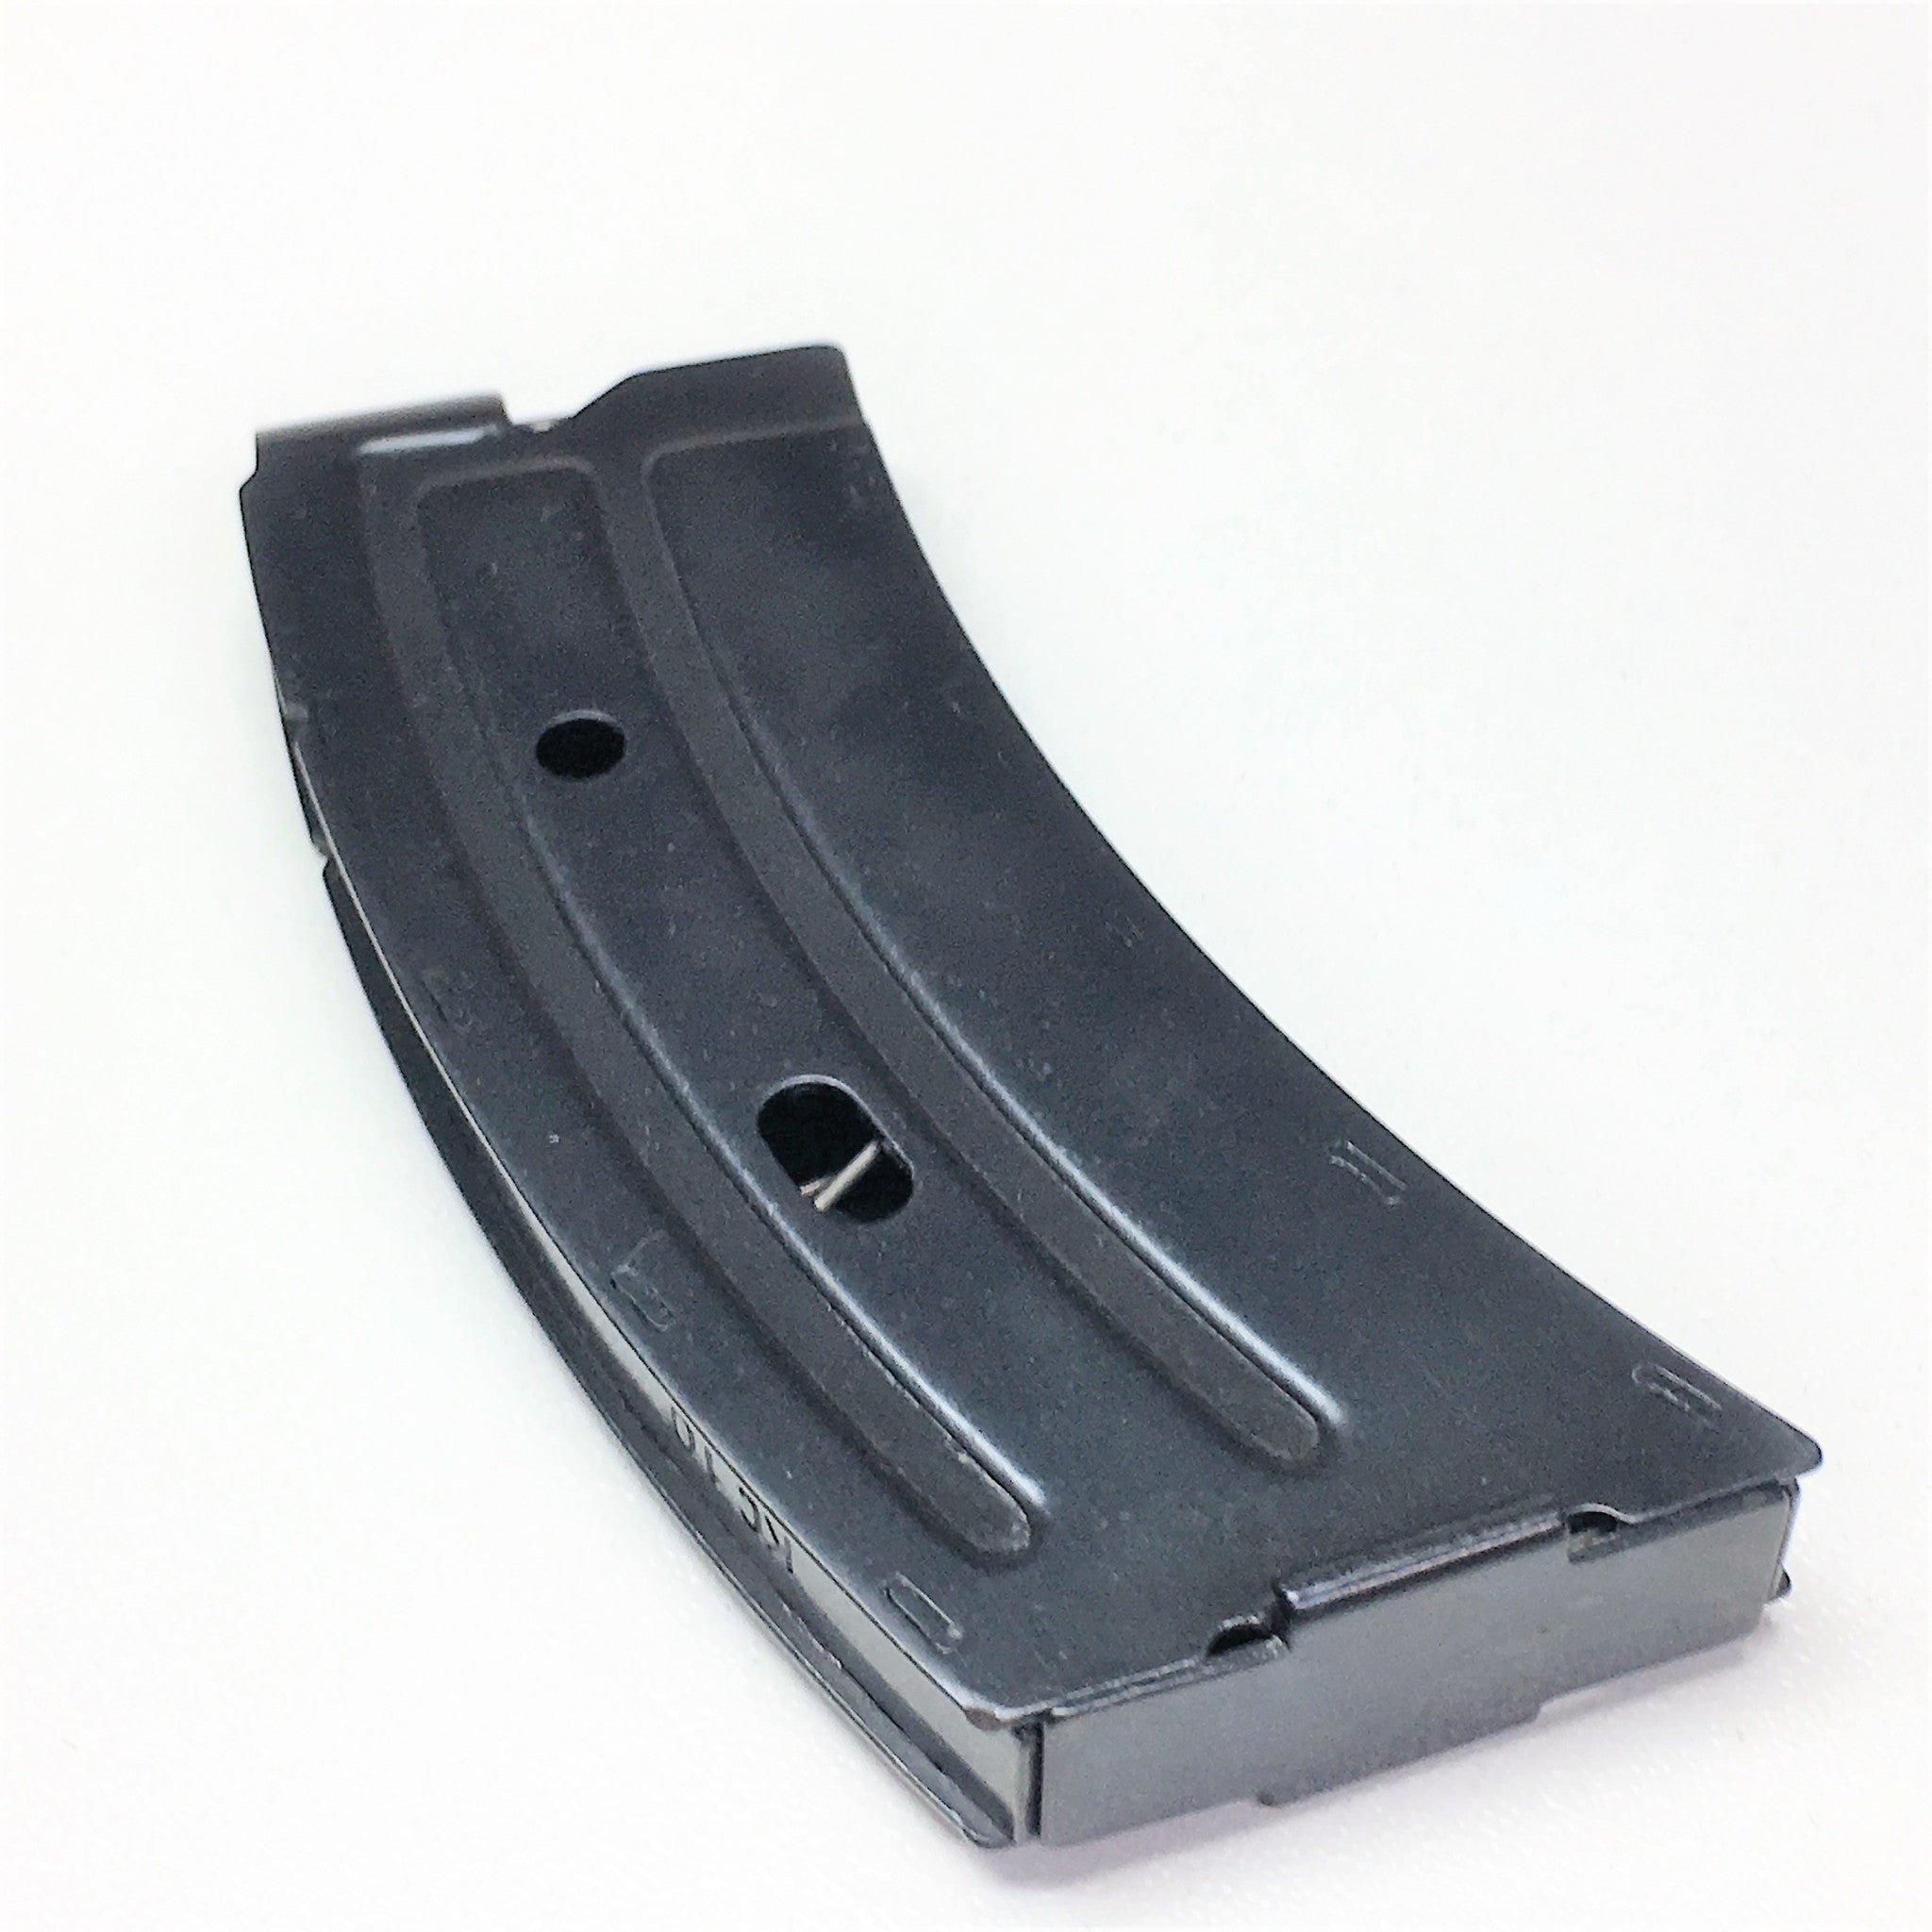 Accusport Magazine Krico Curved 22 Long Rifle 10 Round (60754)